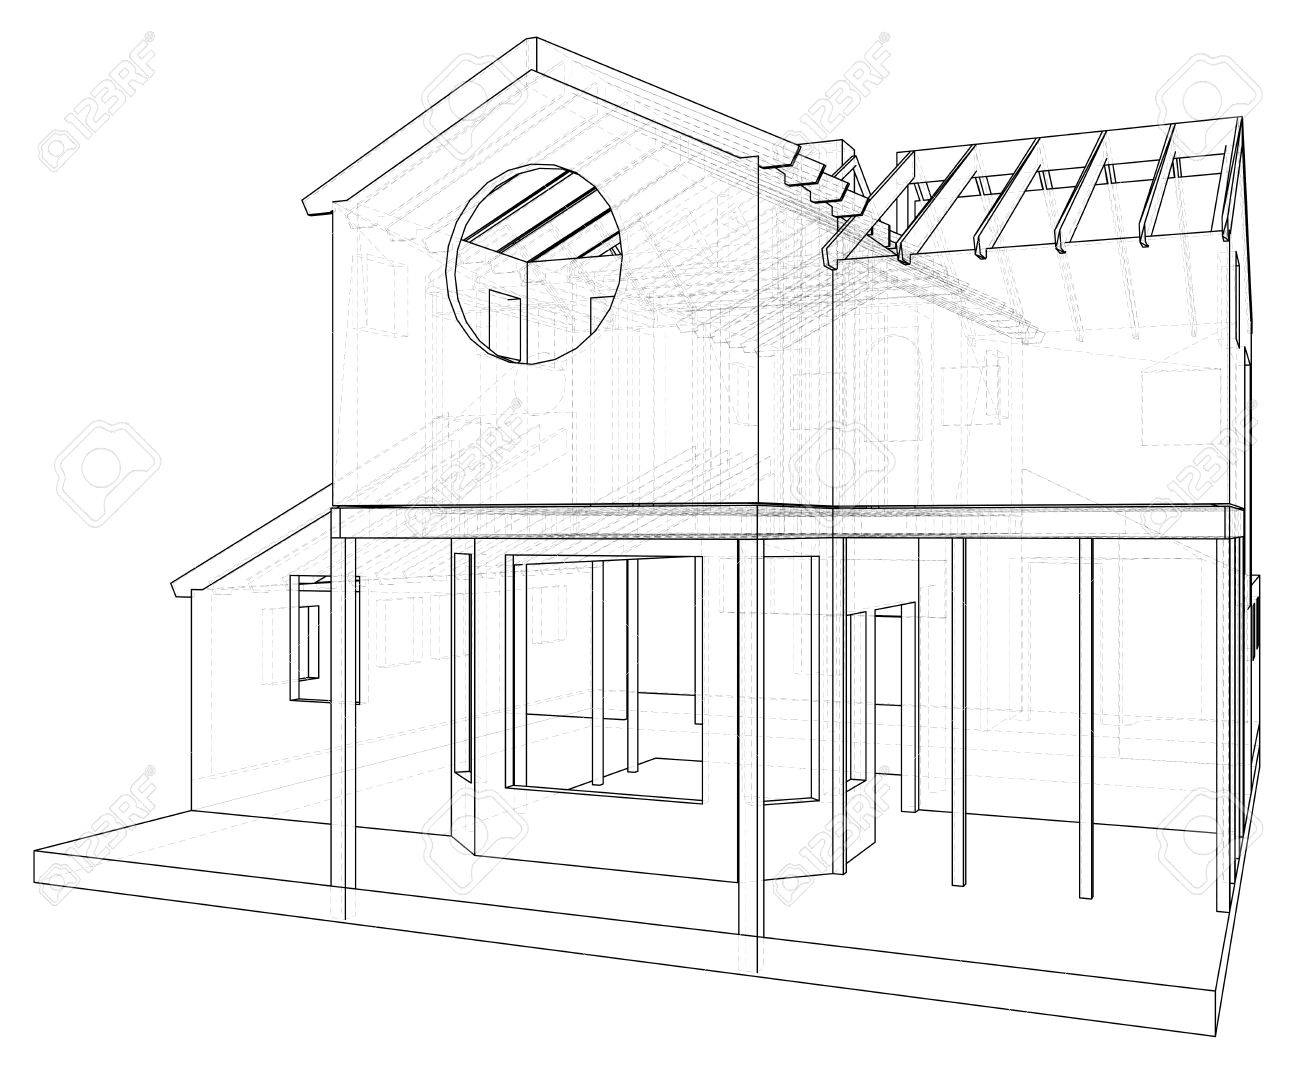 House Drawing In Vector The Contours Of The House Vector Created